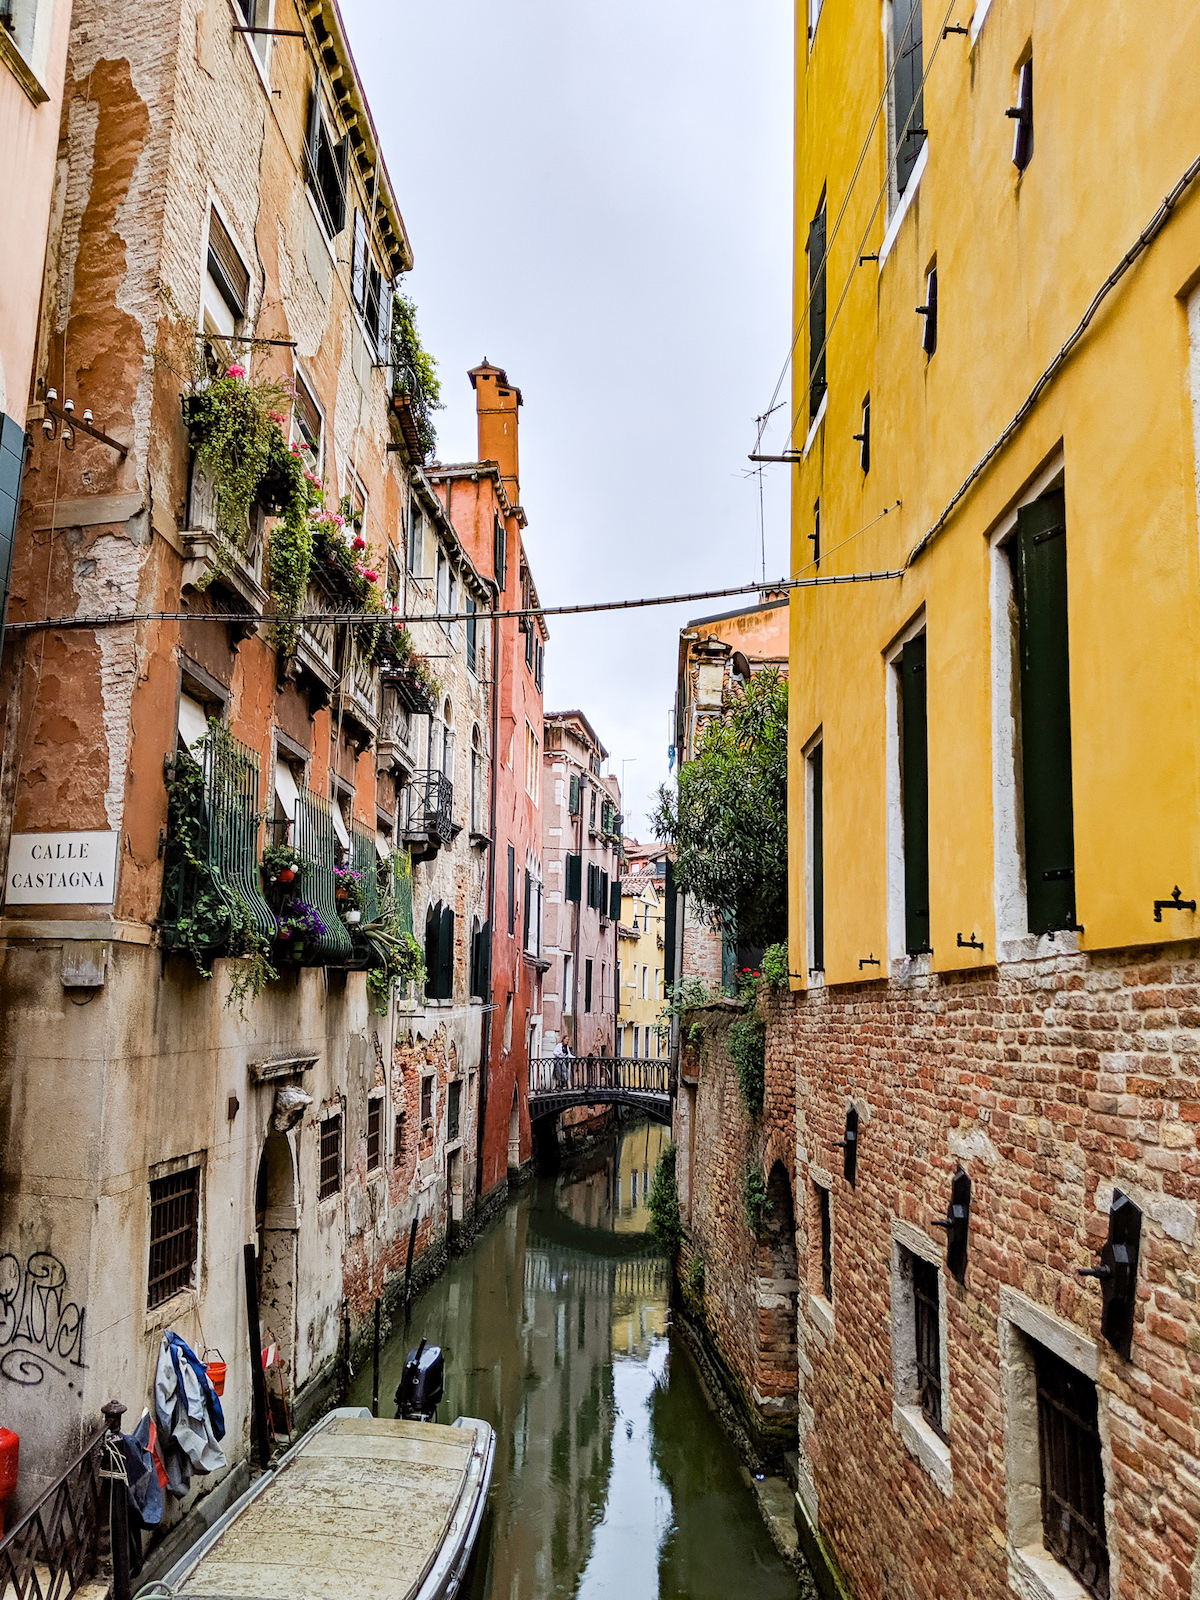 View down an Italian canal